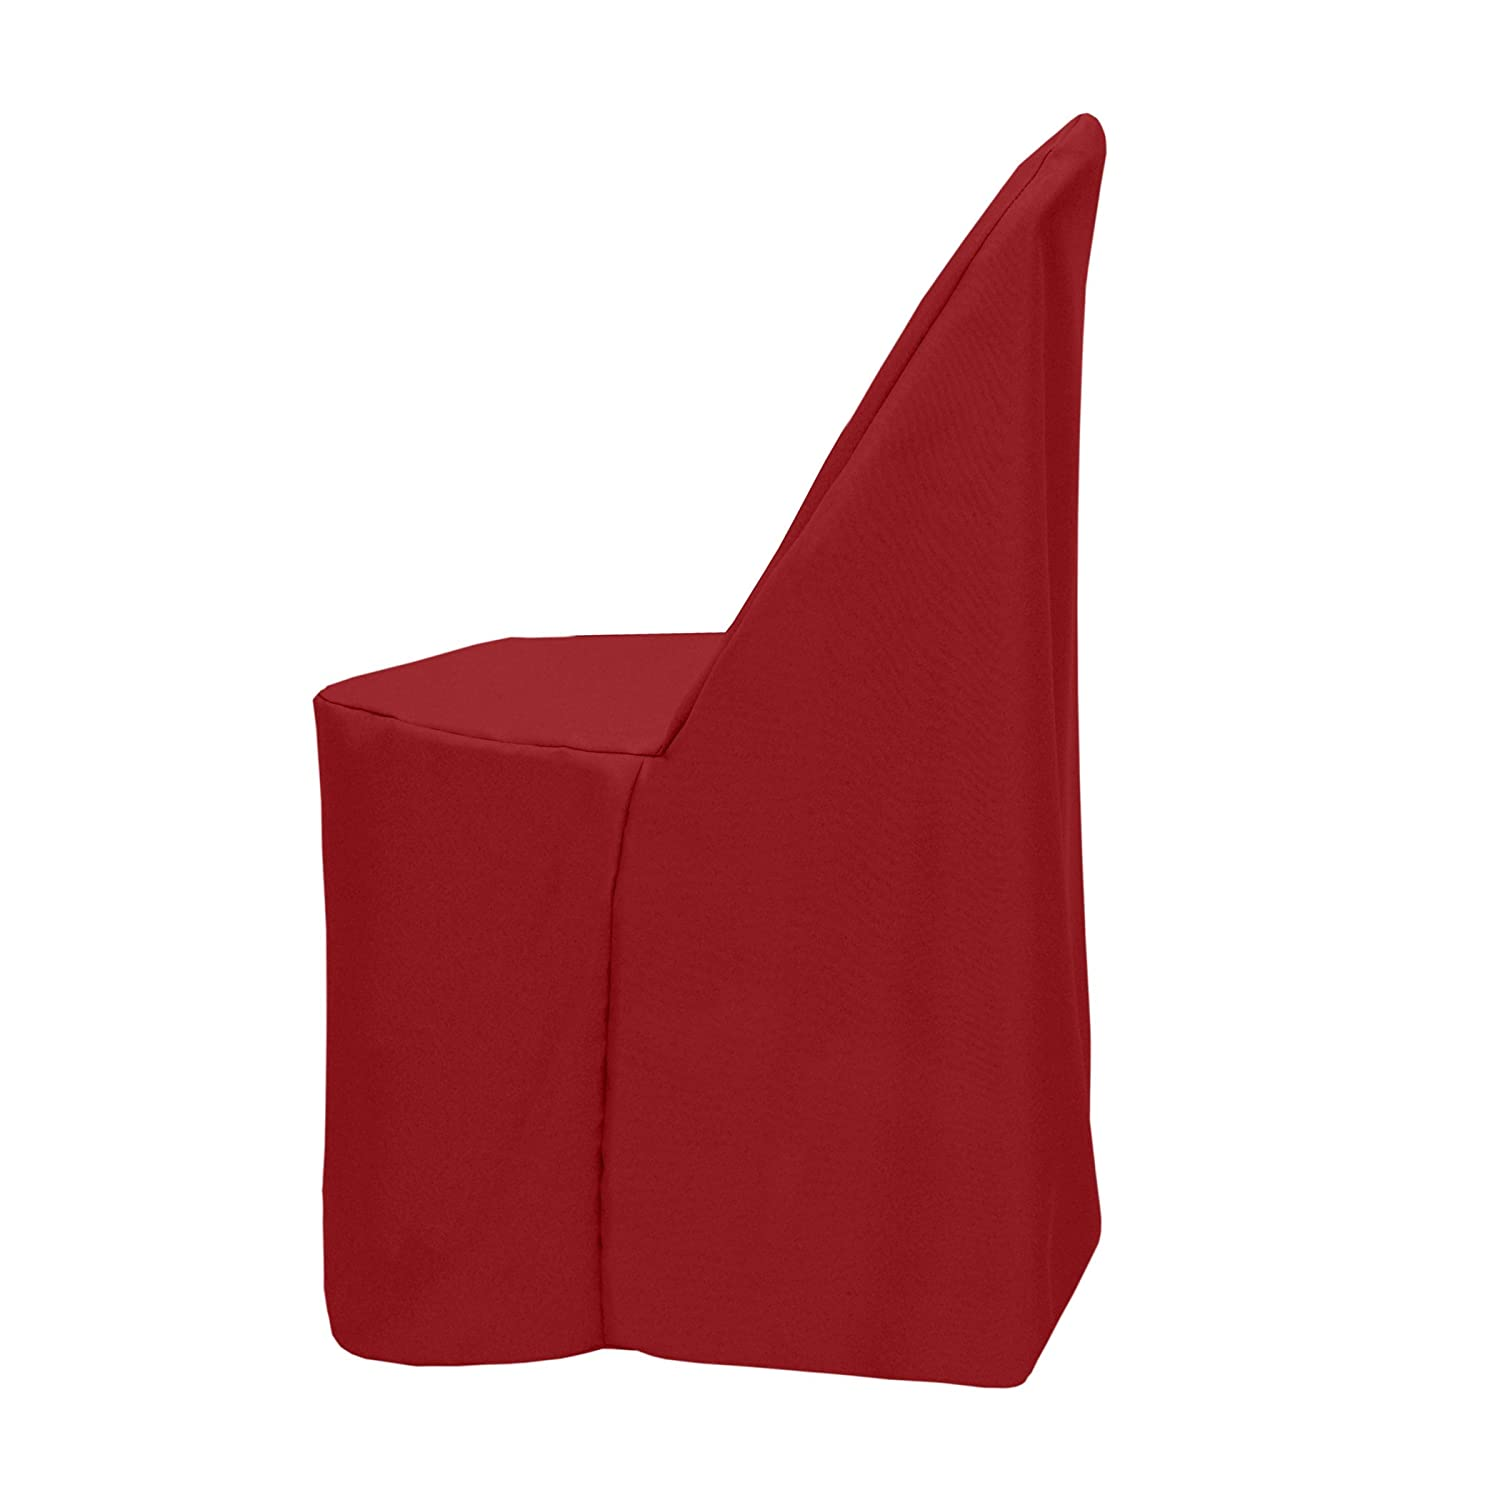 Ultimate Textile -10 Pack- Polyester Folding Chair Cover – Fits Metal or Plastic Folding Chairs, Cherry Red